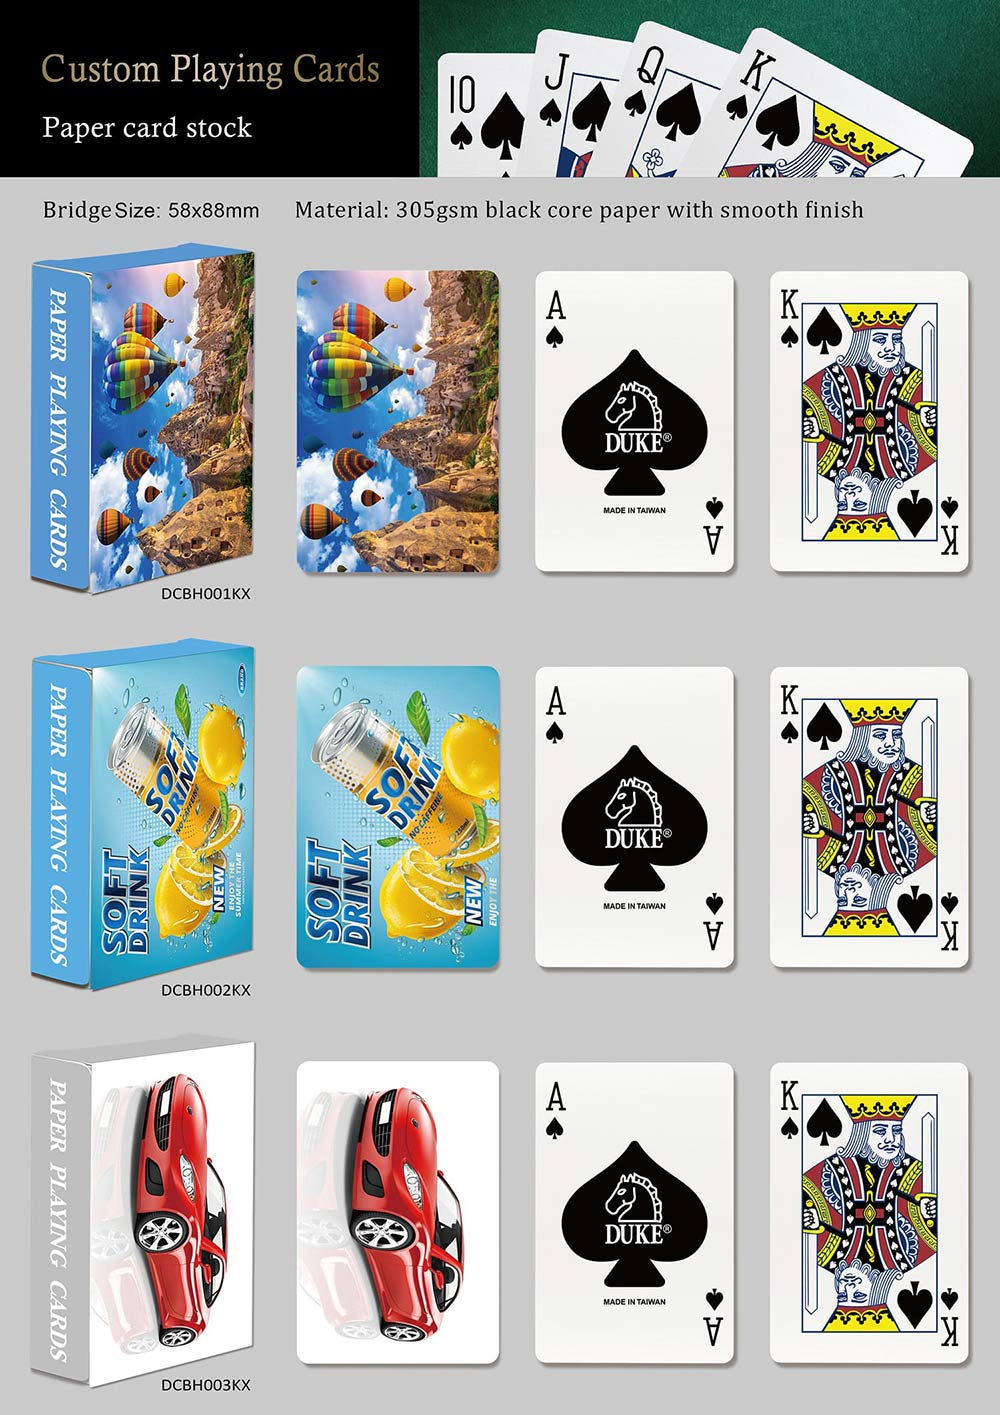 Ad playing cards-Paper